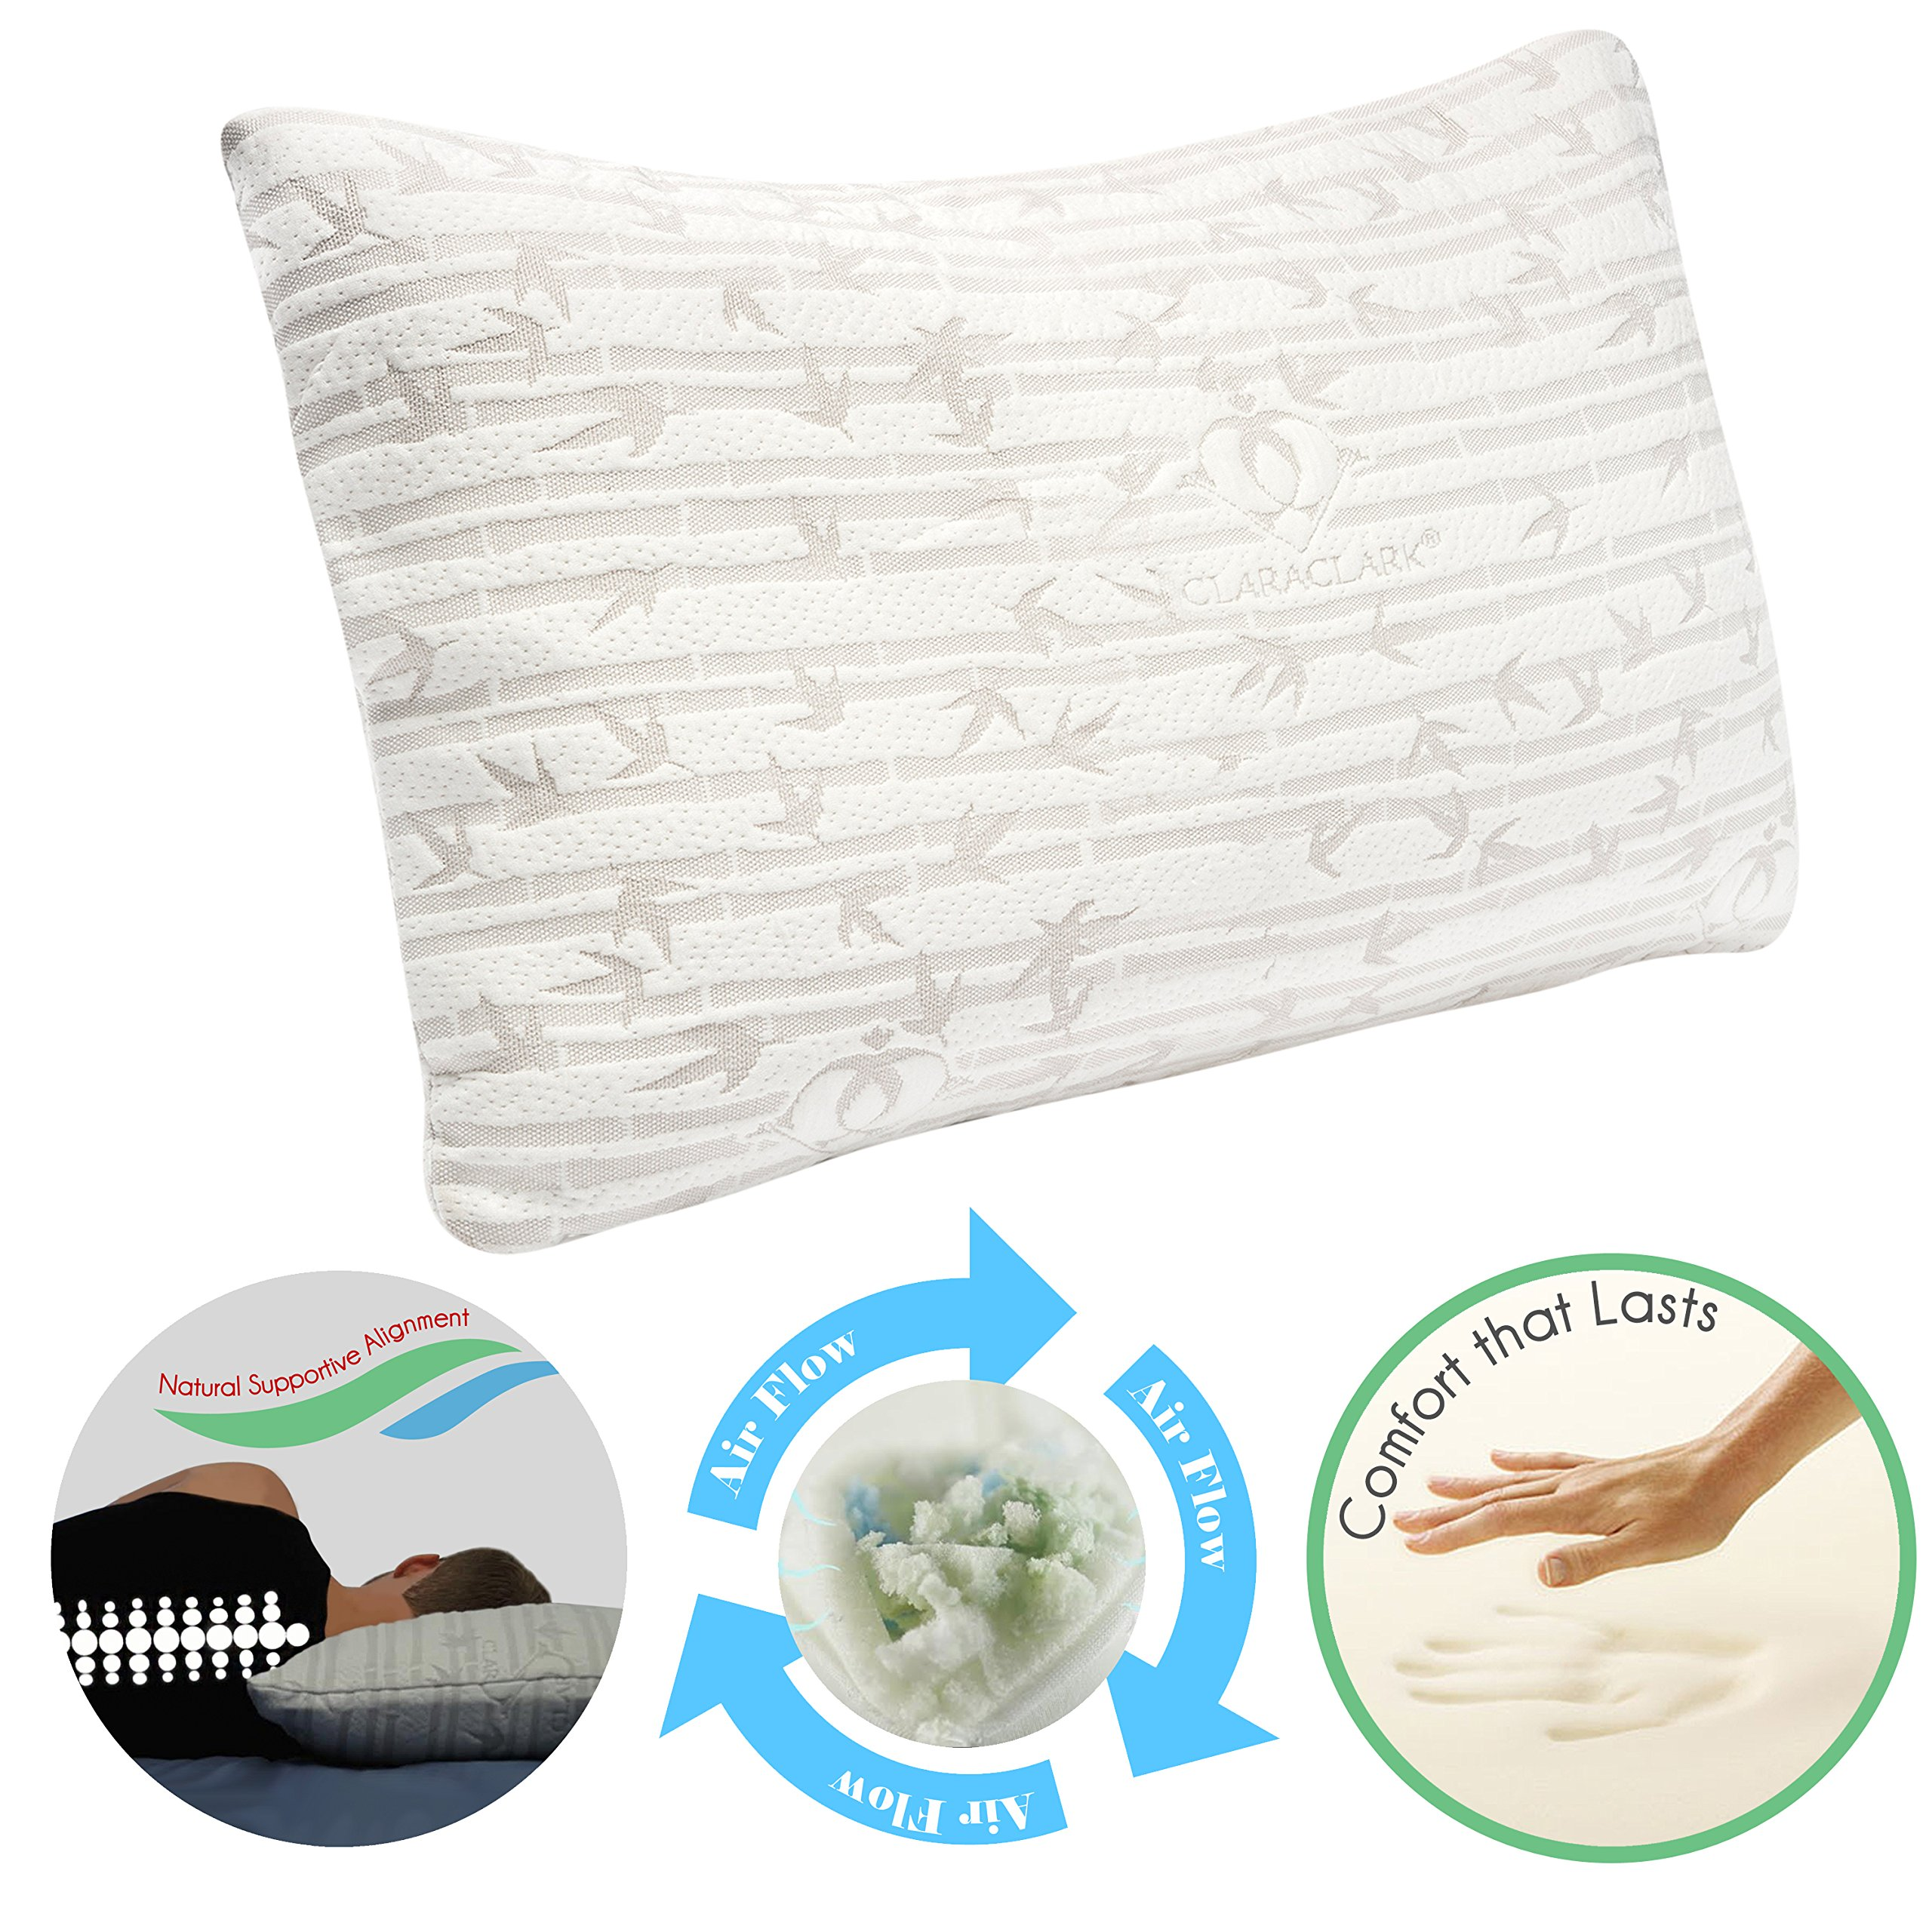 Clara Clark Shredded Memory Foam Gel Fiber-Filled Cool All Side Sleeper Bed Pillow, King Size, White, with Rayon made from Bamboo Washable Hypoallergenic Zippered Removable Cover,